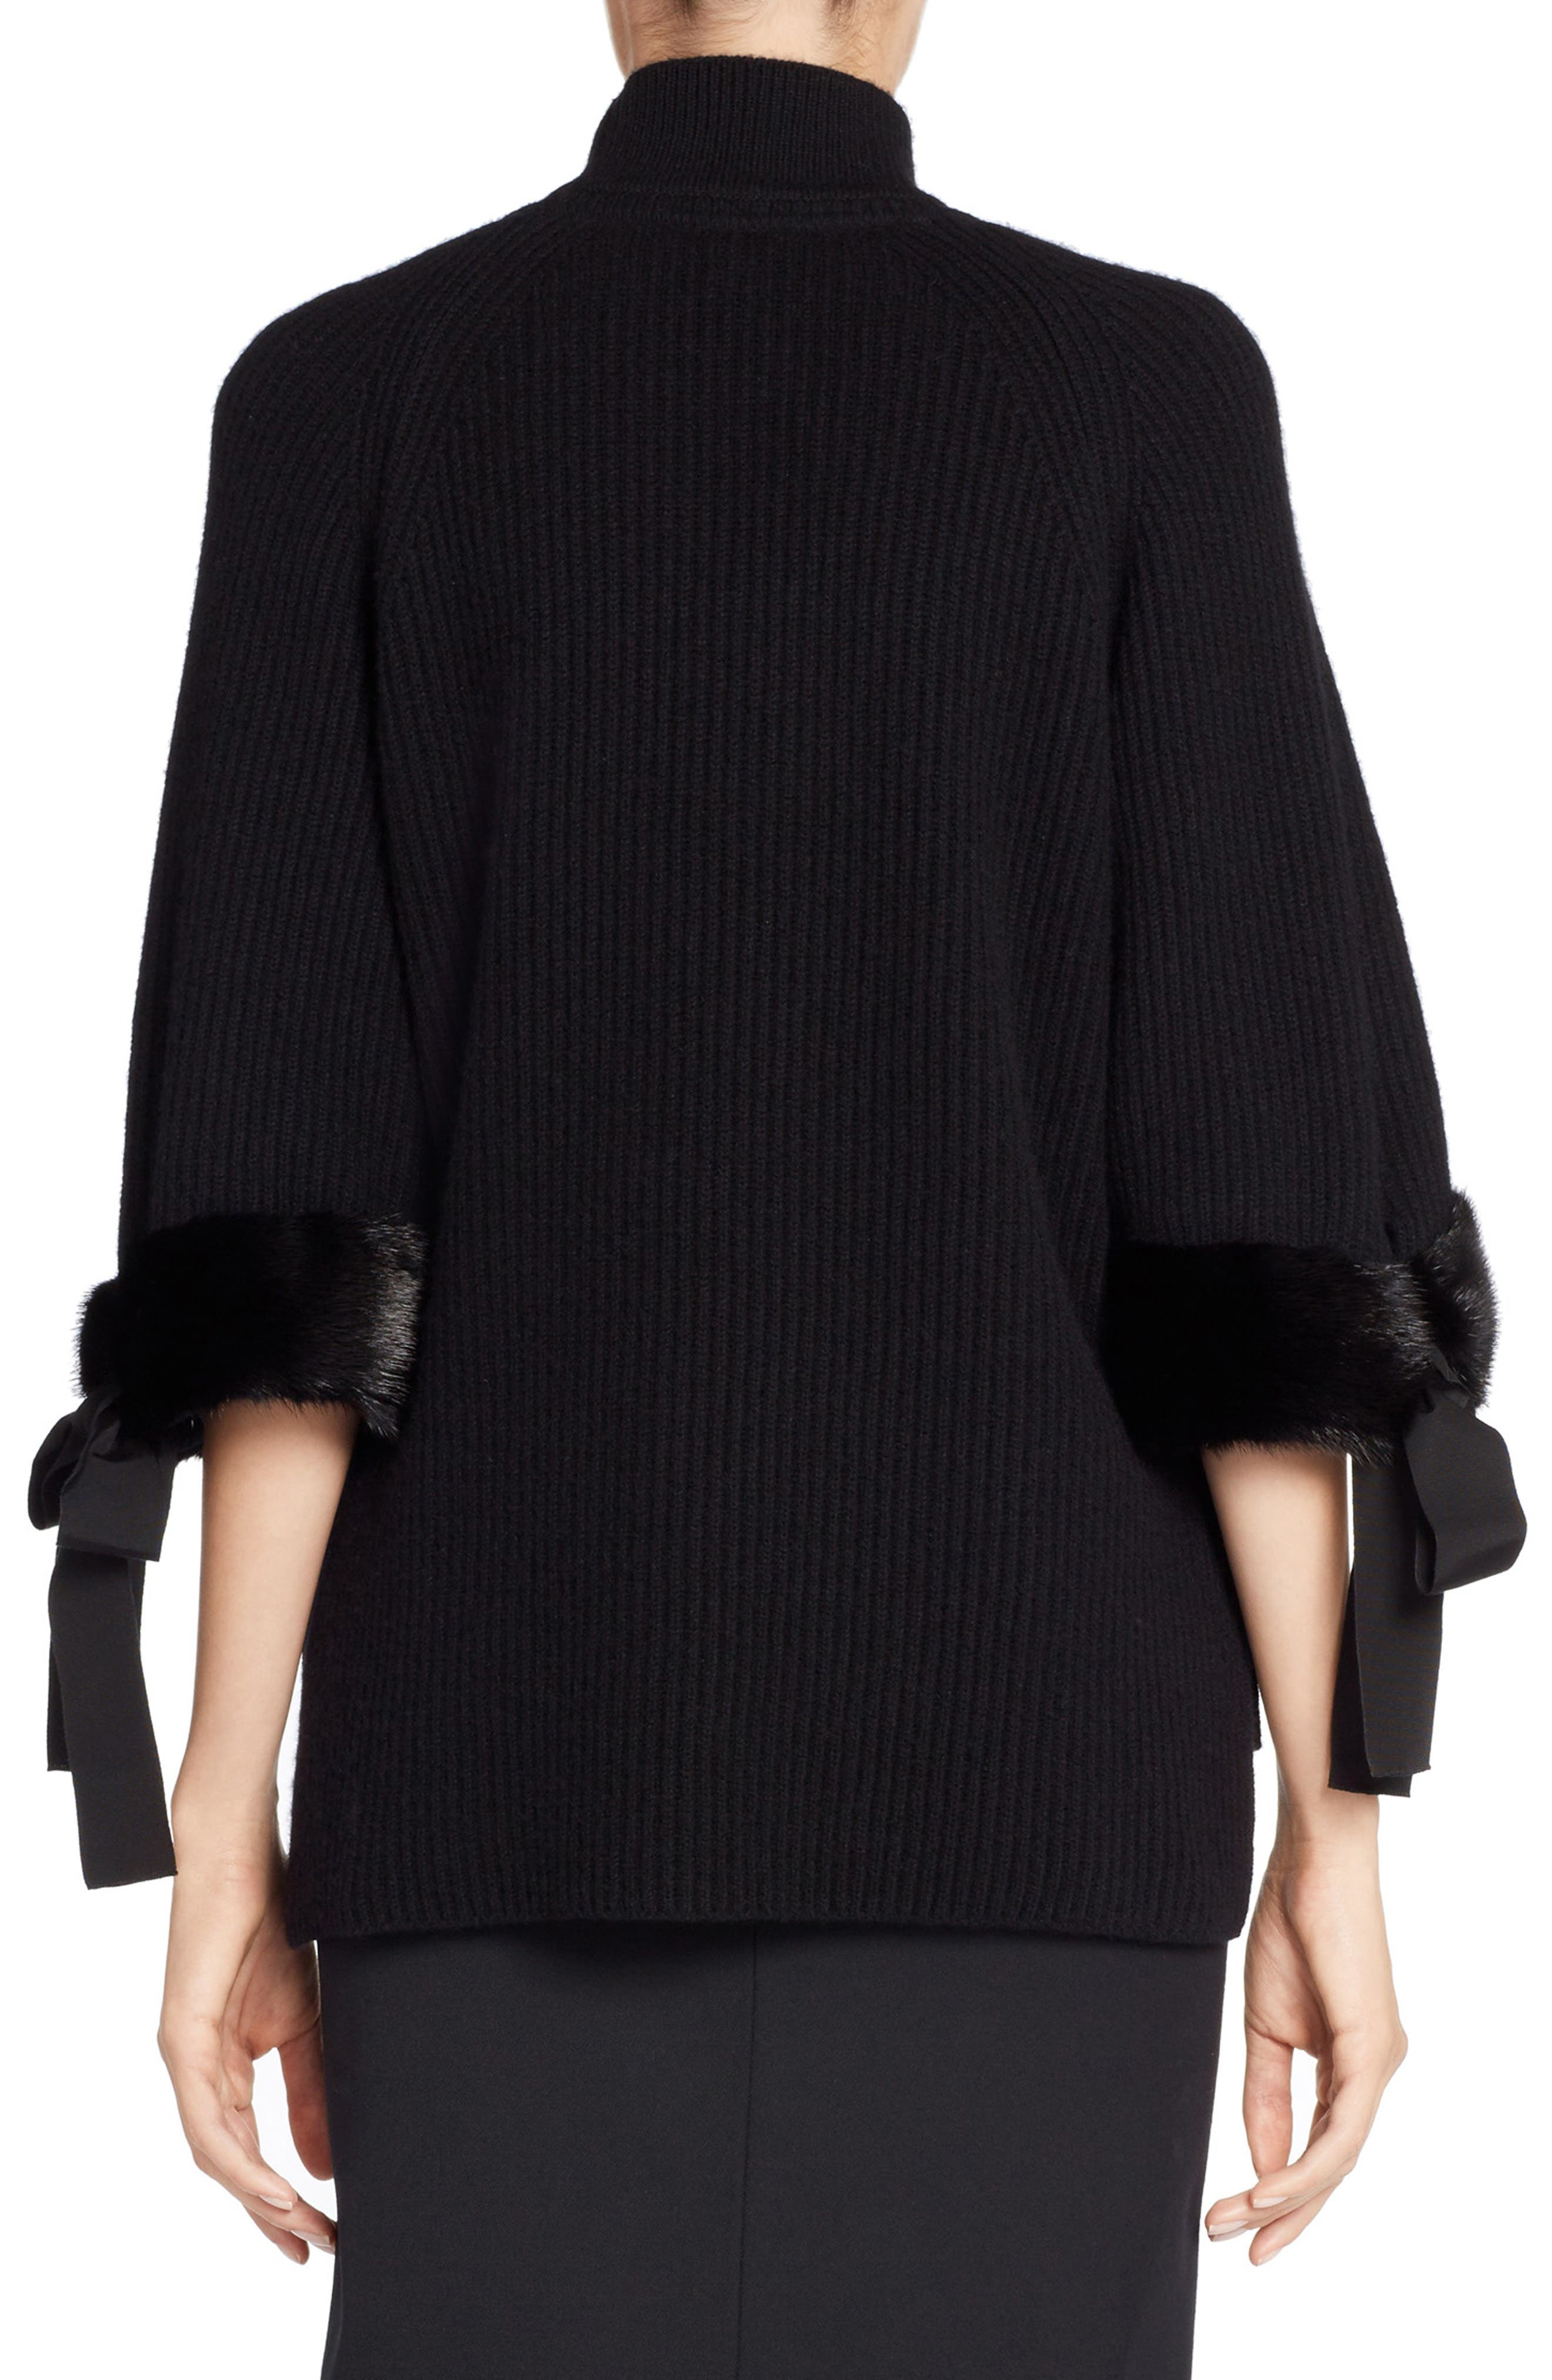 Taylor roll neck oversized sweatshirt Original Buy Cheap Pictures MP8Htbf